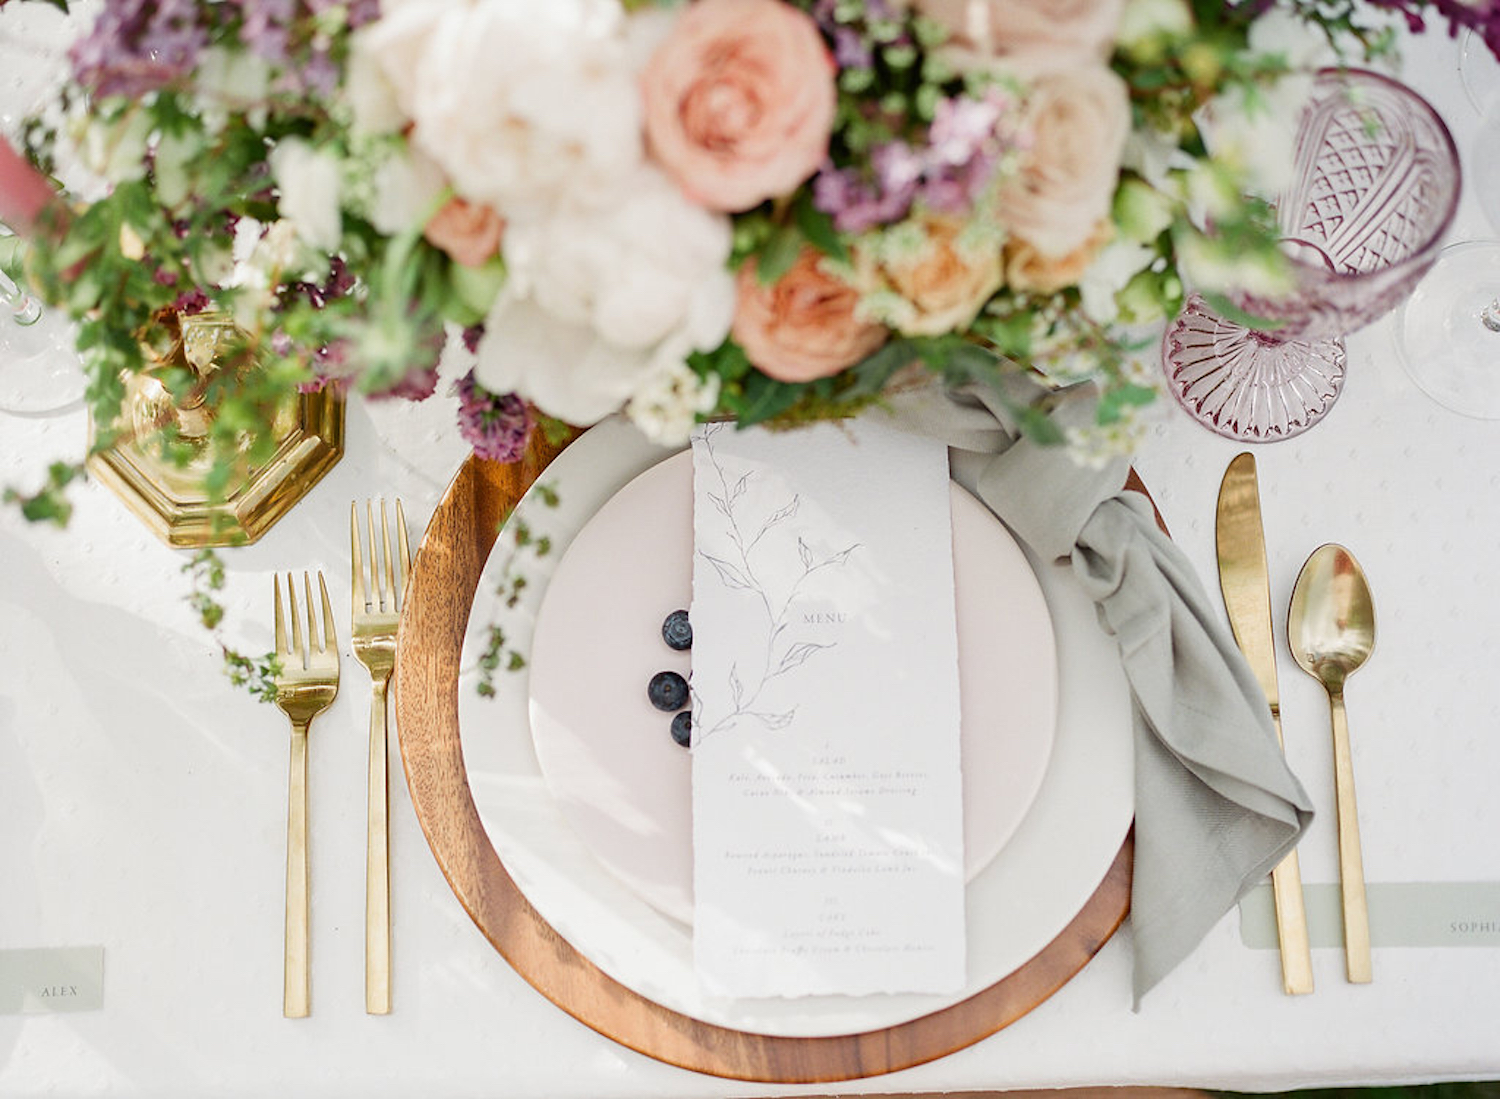 The-Styled-Soiree-Colorado-Wedding-Planner58.jpg